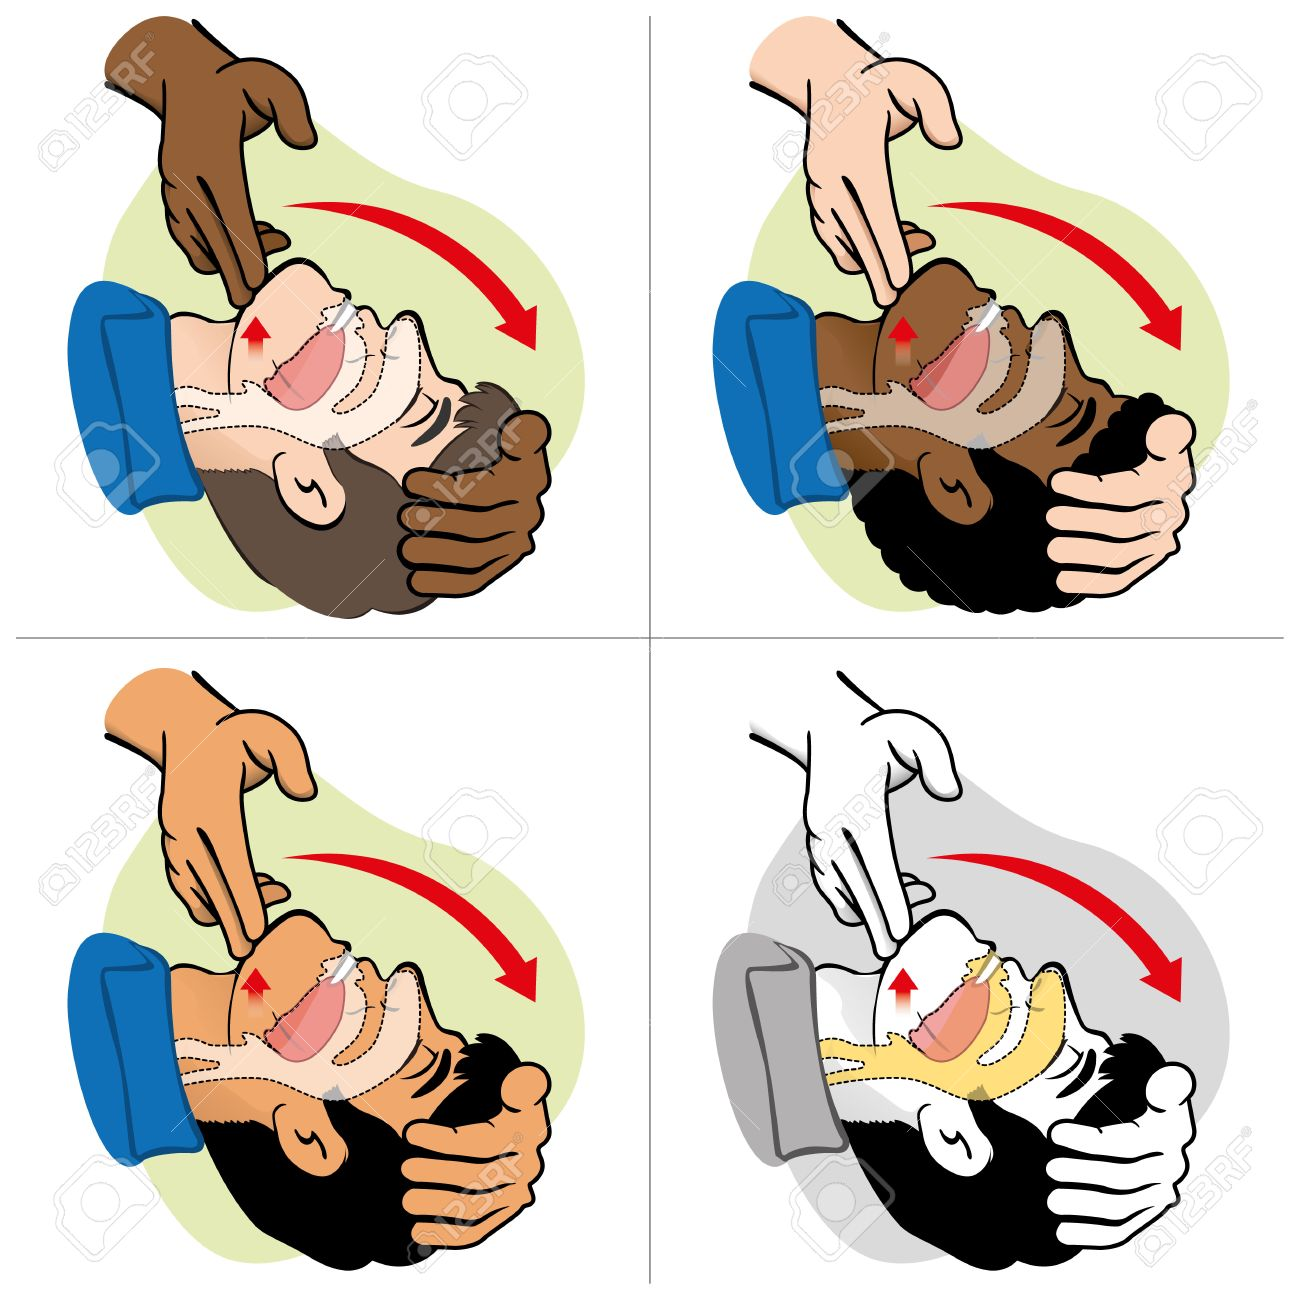 85 Cpr free clipart.